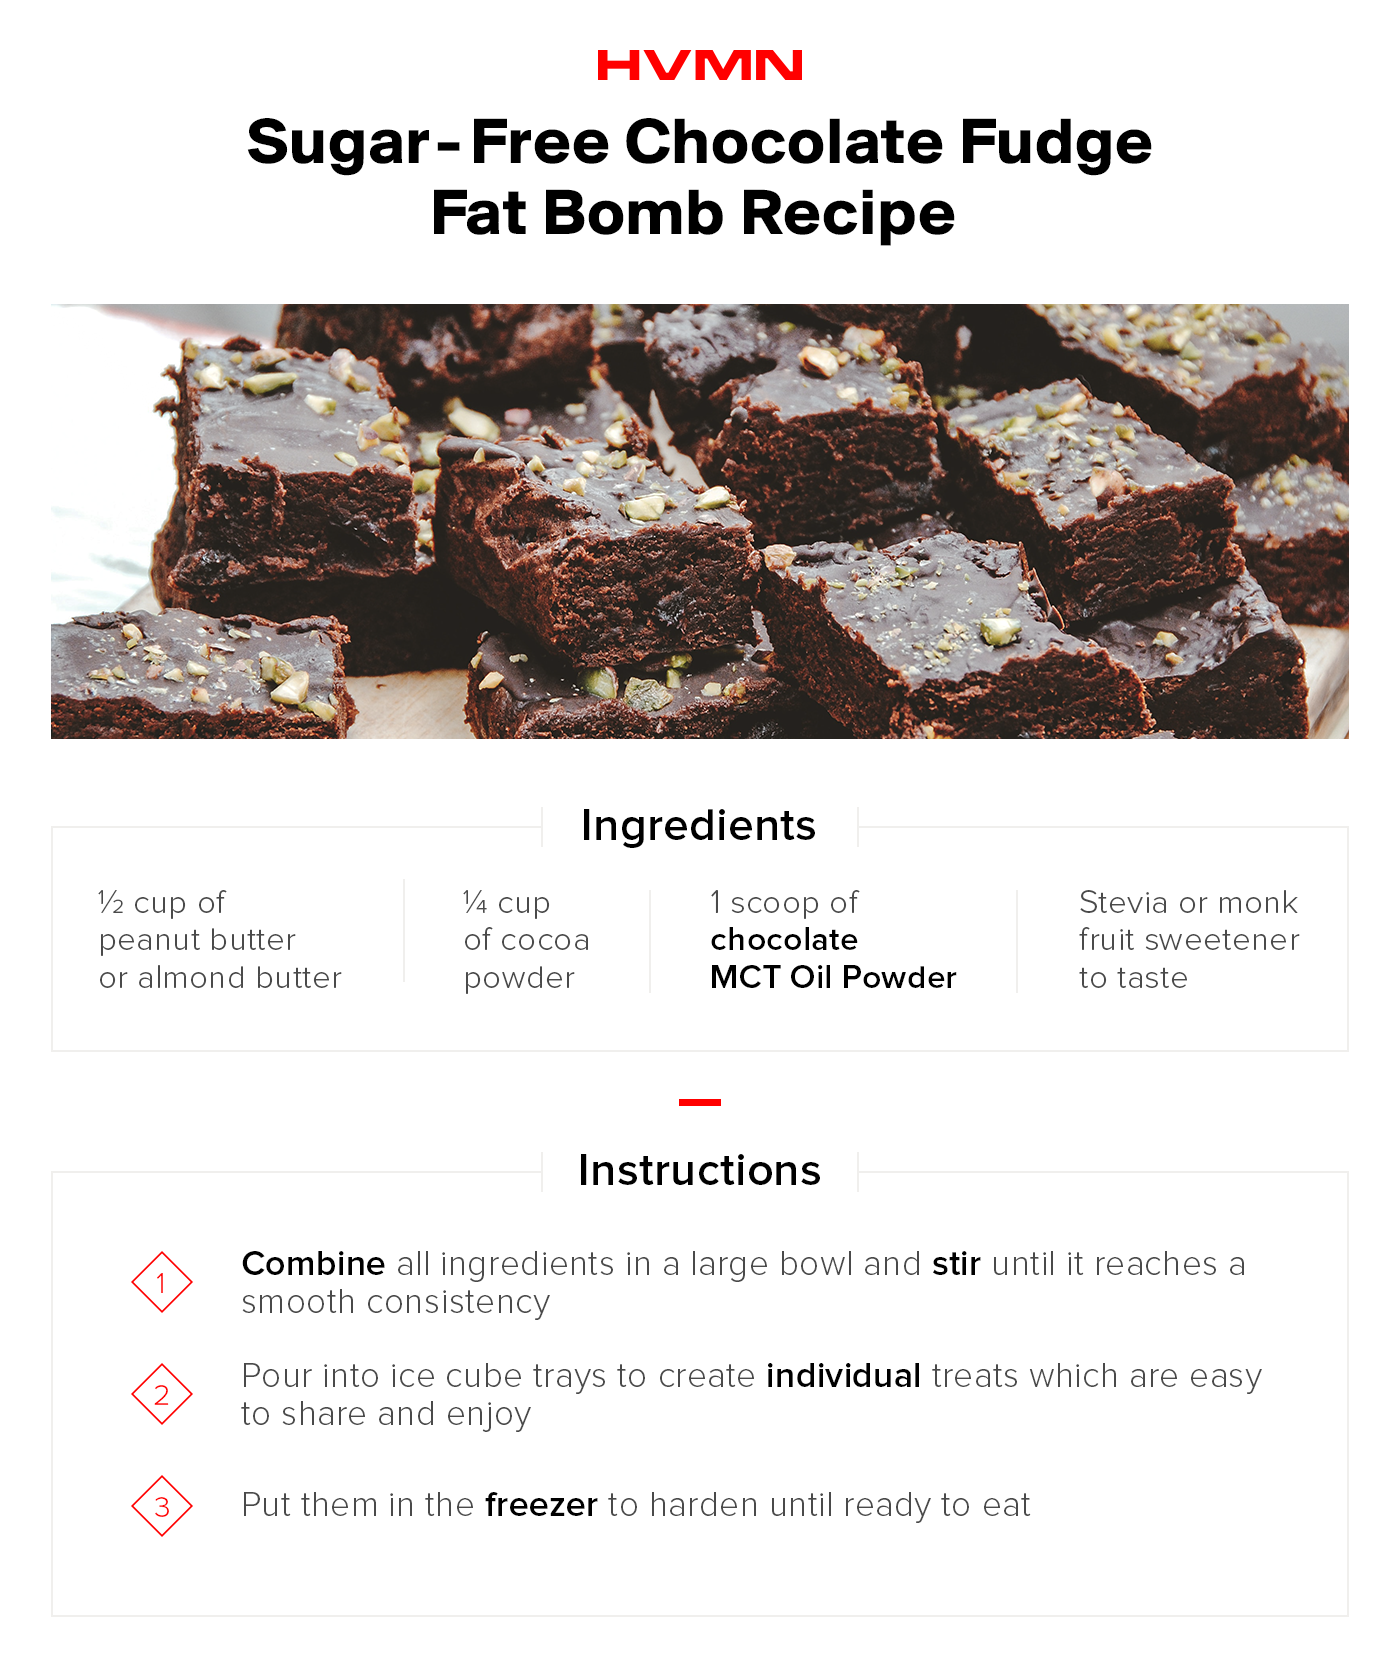 An image of a pile brownies, showing the food this fat bomb recipe hopes to mimick